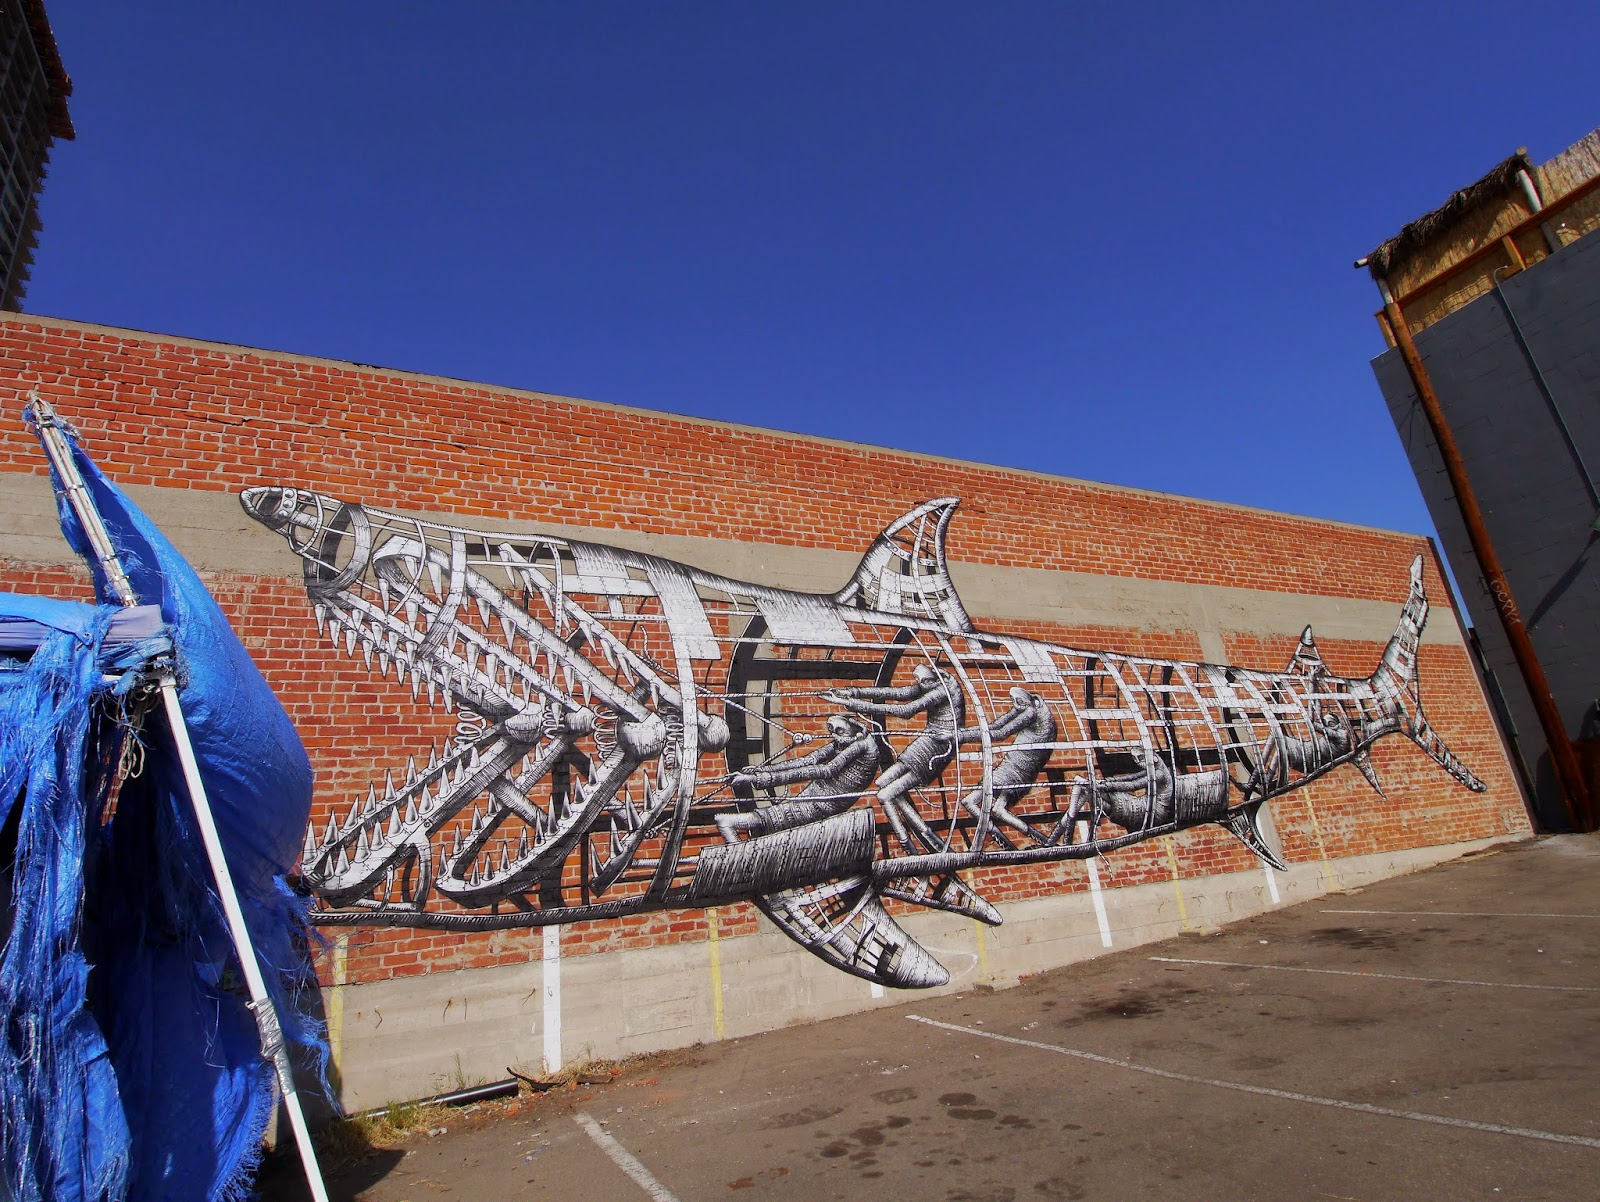 phlegm-new-mural-in-san-diego-california-06